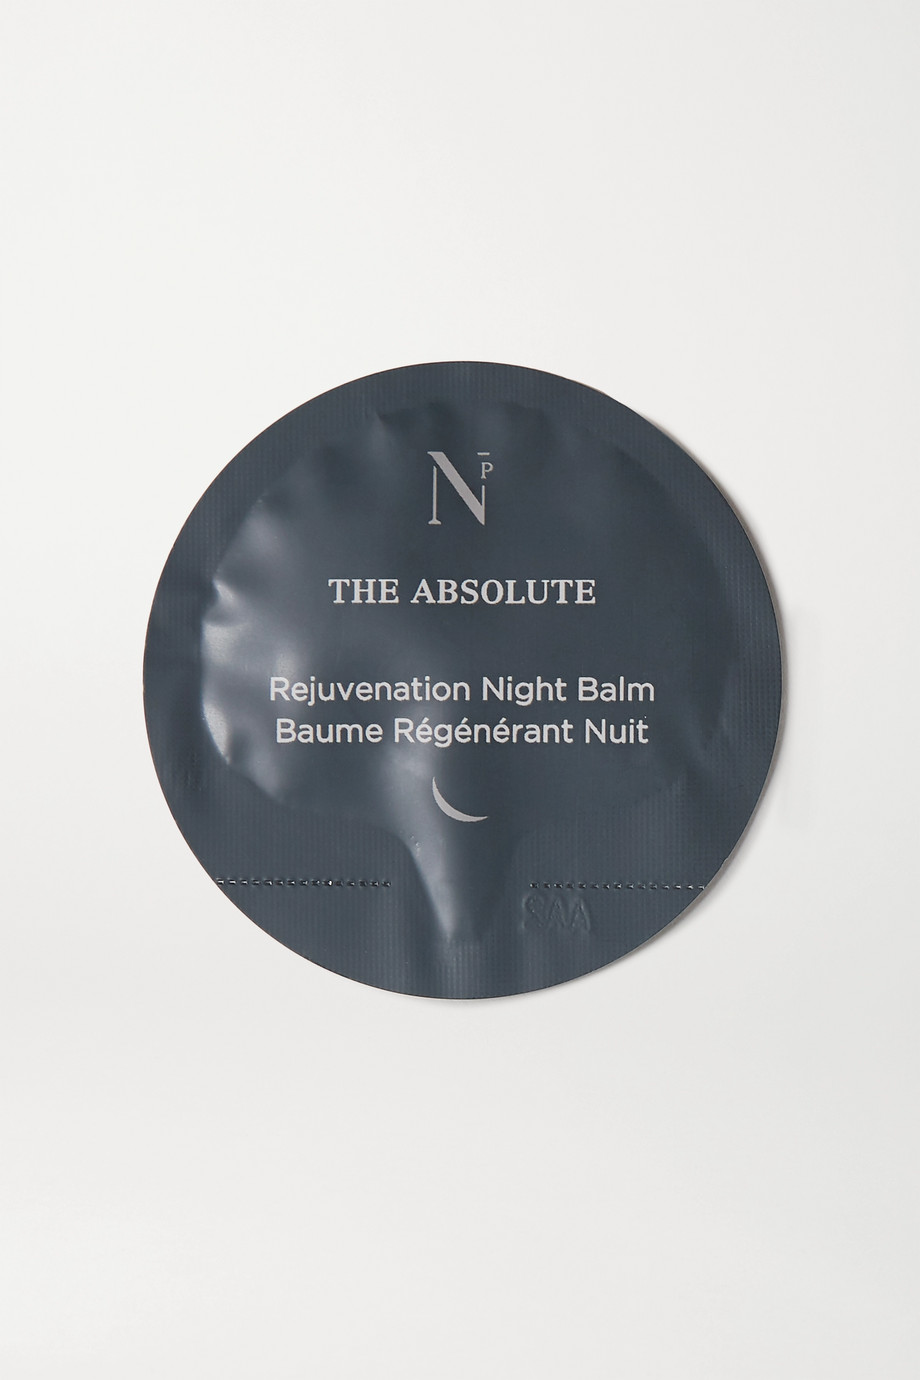 Noble Panacea The Absolute Rejuvenation Night Balm, 30 x 0.8ml